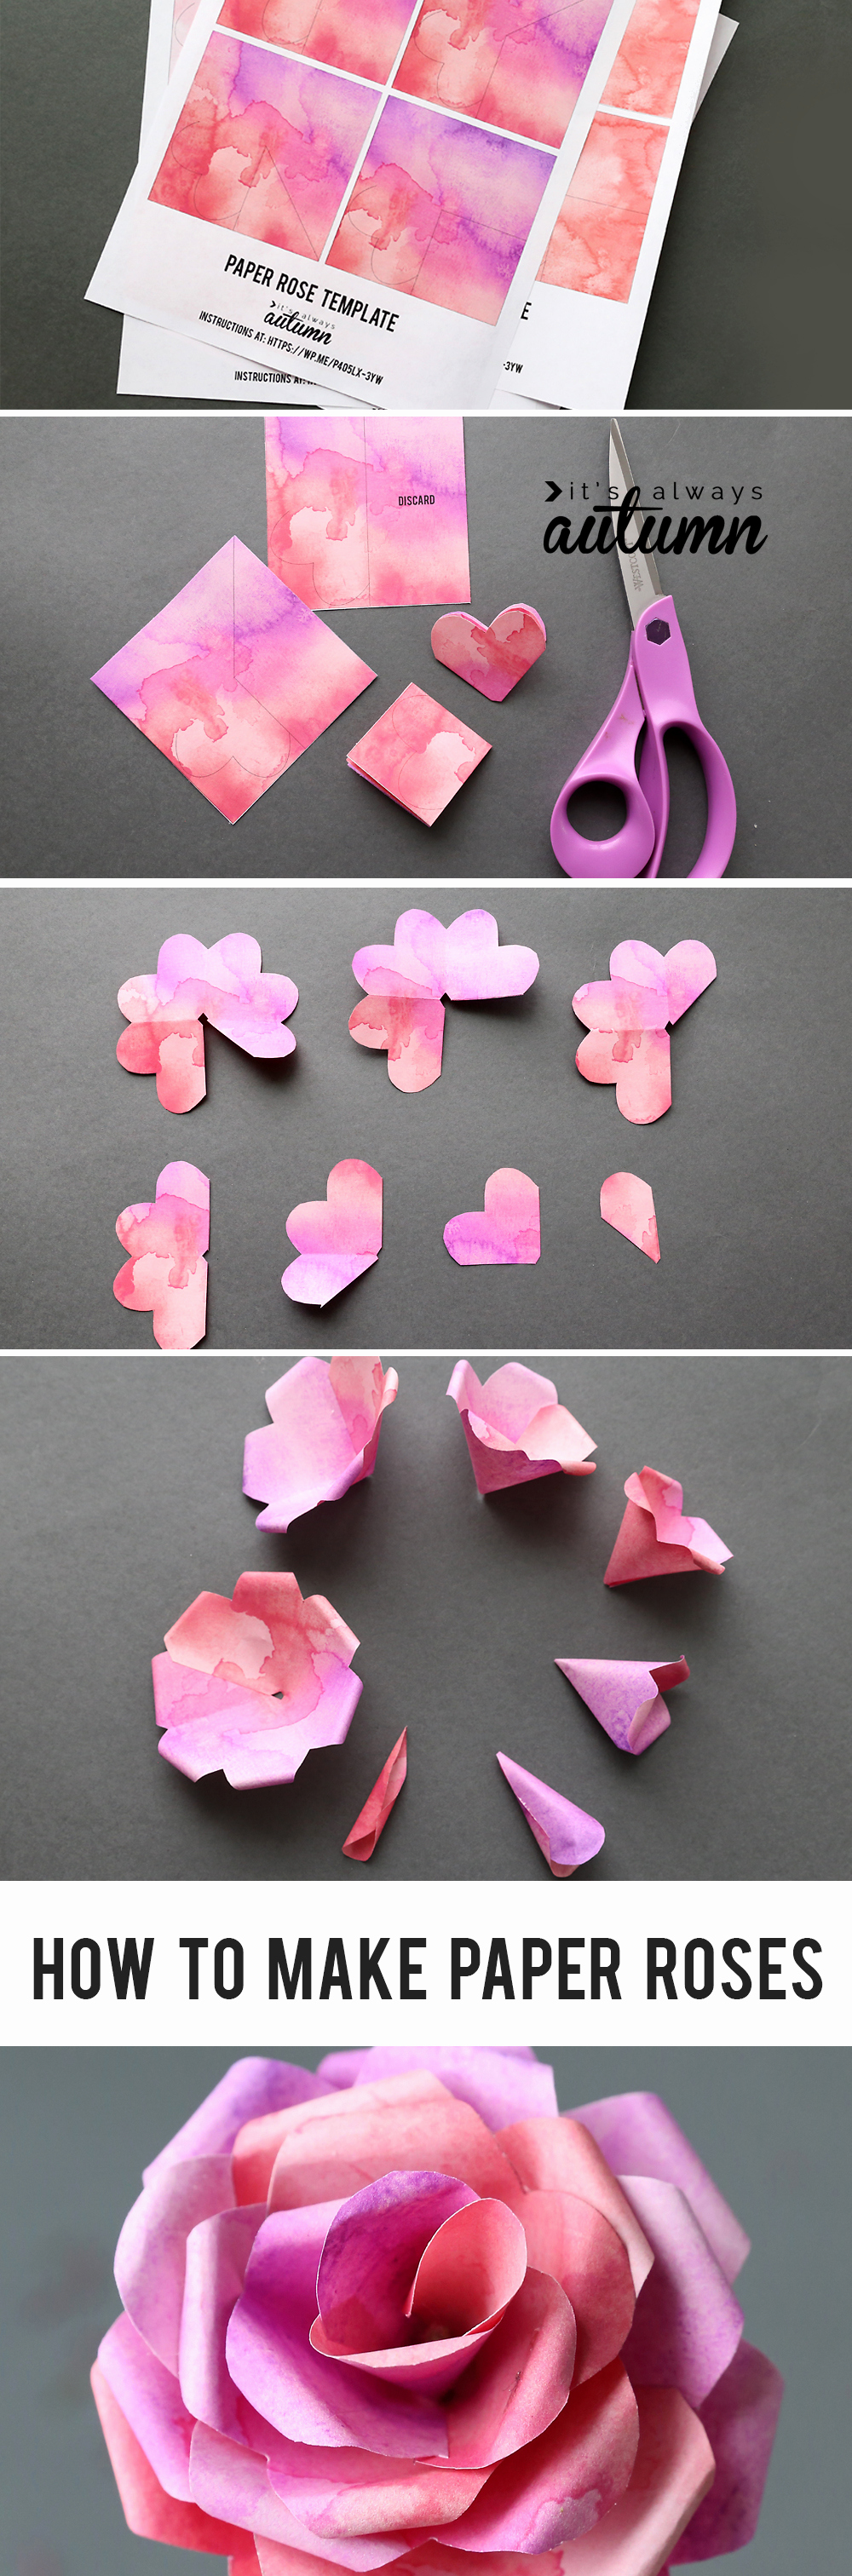 Paper Flower Template Printable Best Of Make Gorgeous Paper Roses with This Free Paper Rose